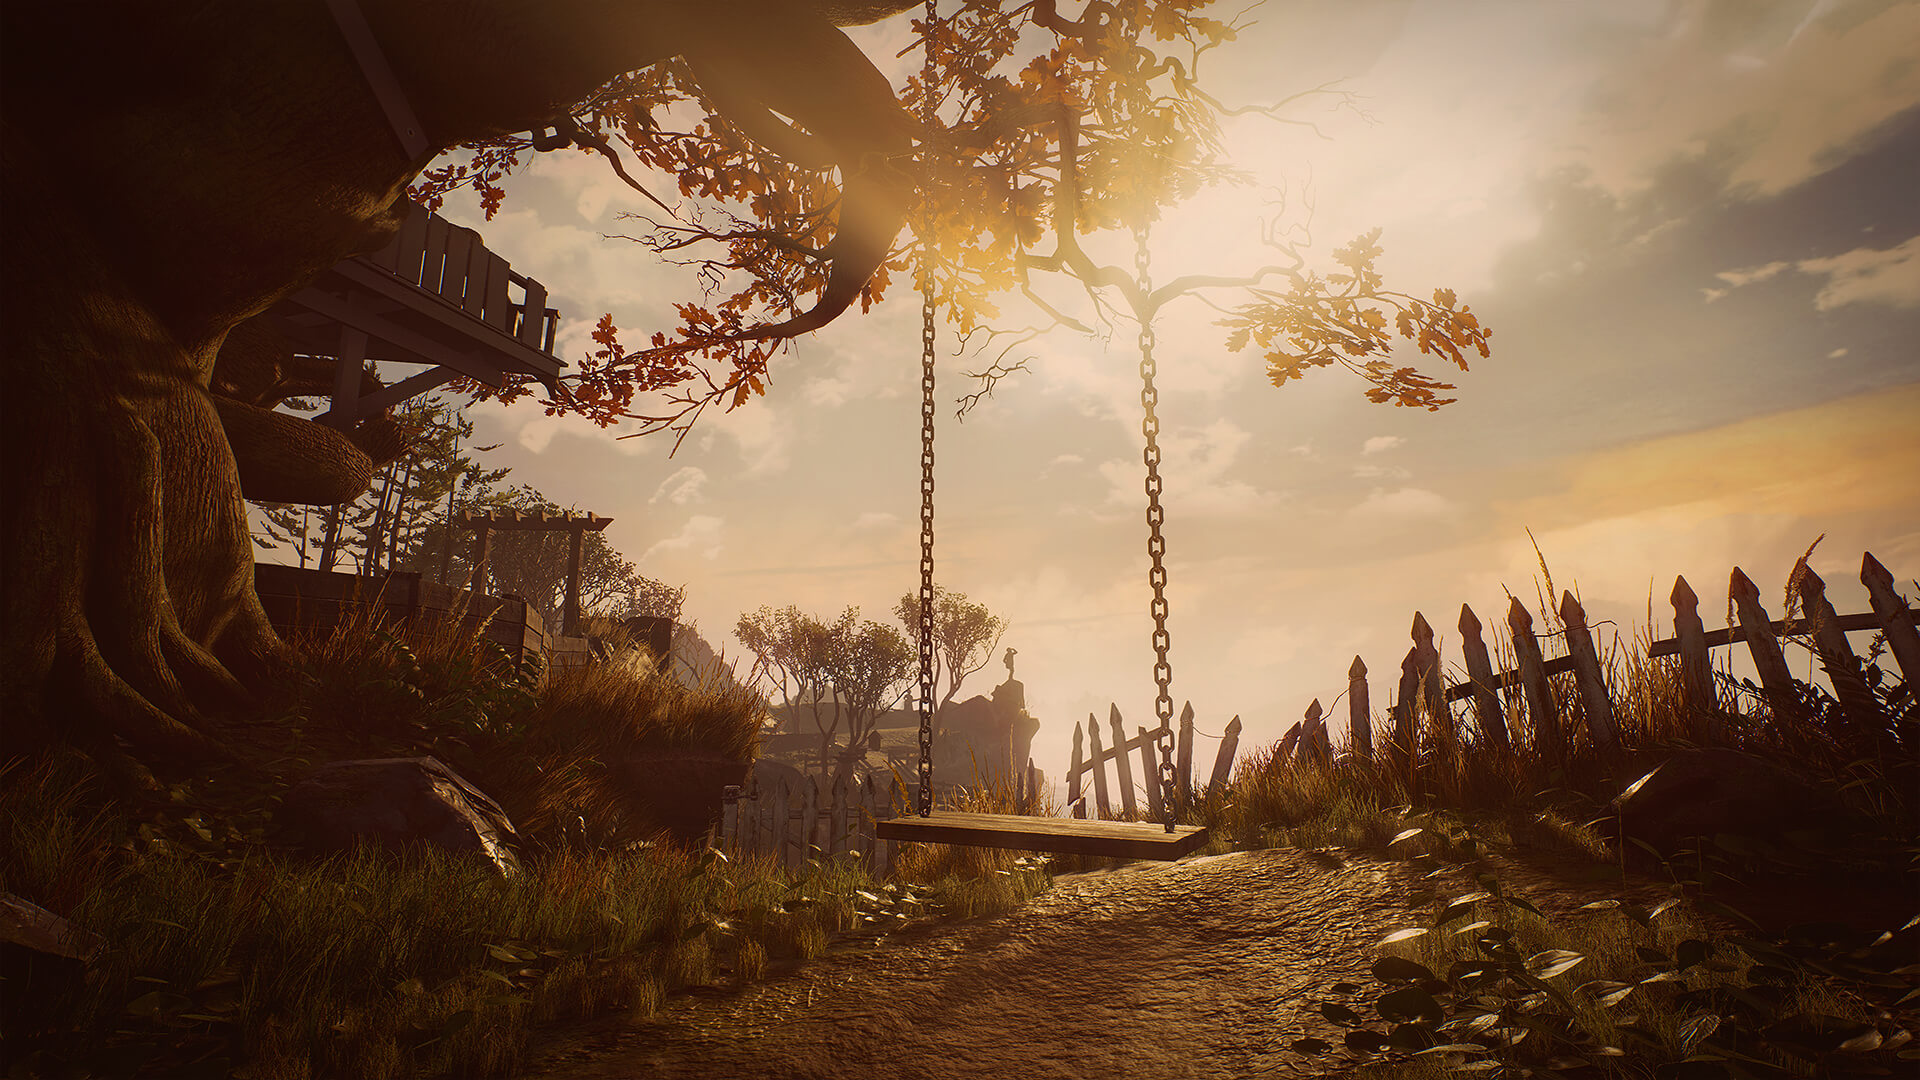 edith finch, What Remains of Edith Finch, Giant Sparrow, Epic Games Store, free, deal, January, PC